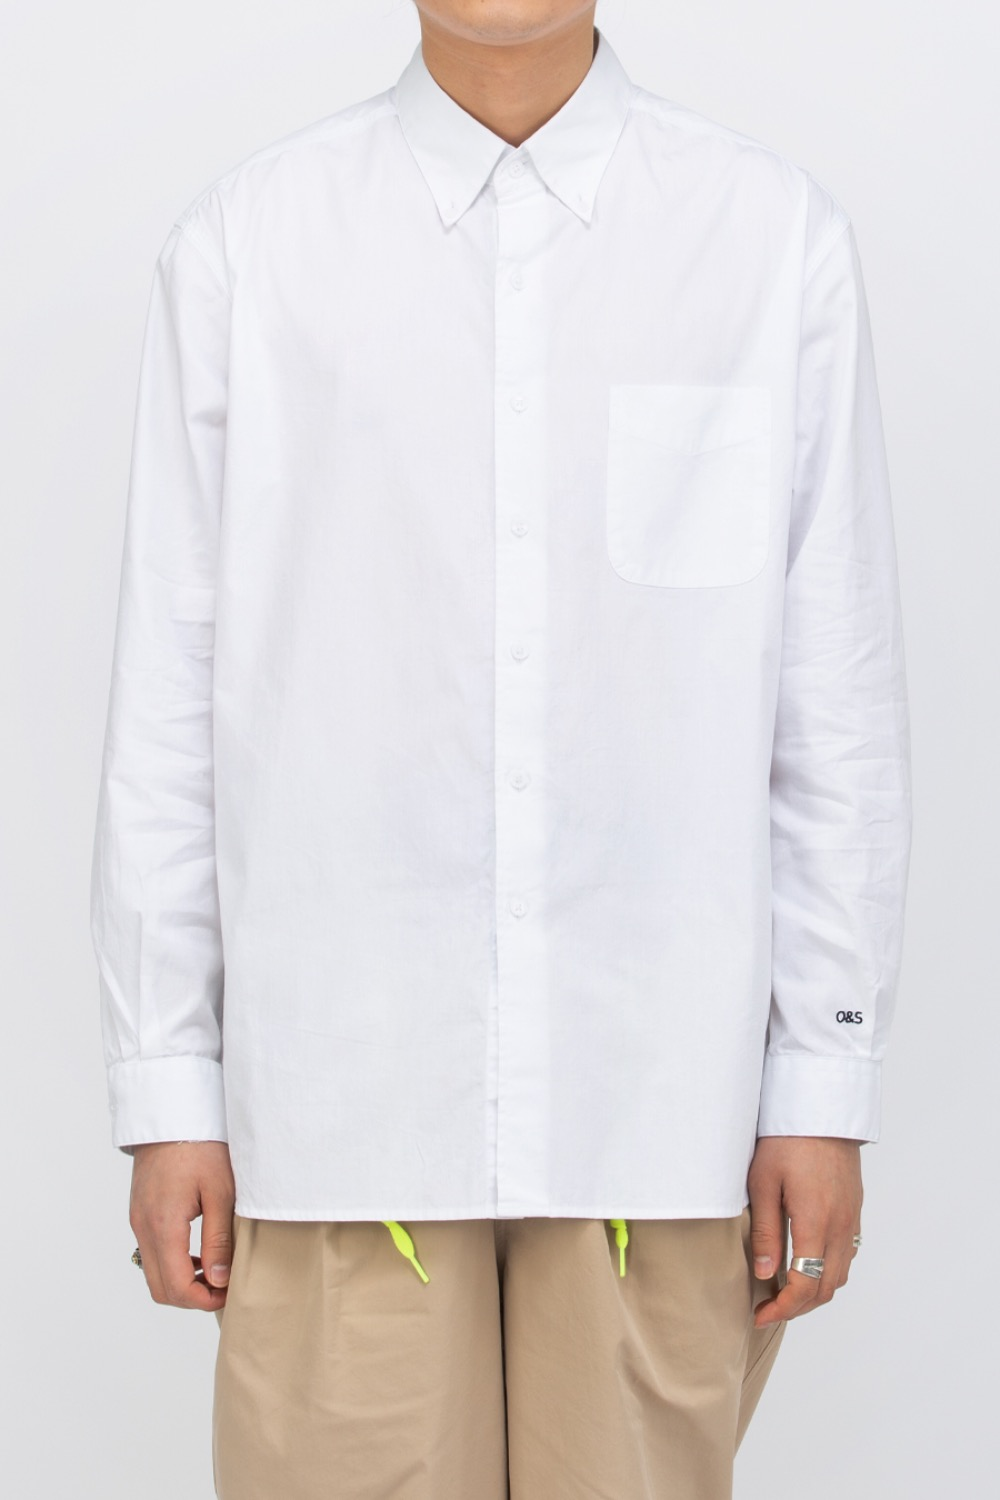 OVERCAST X SCULP_BIG SHIRT WHITE